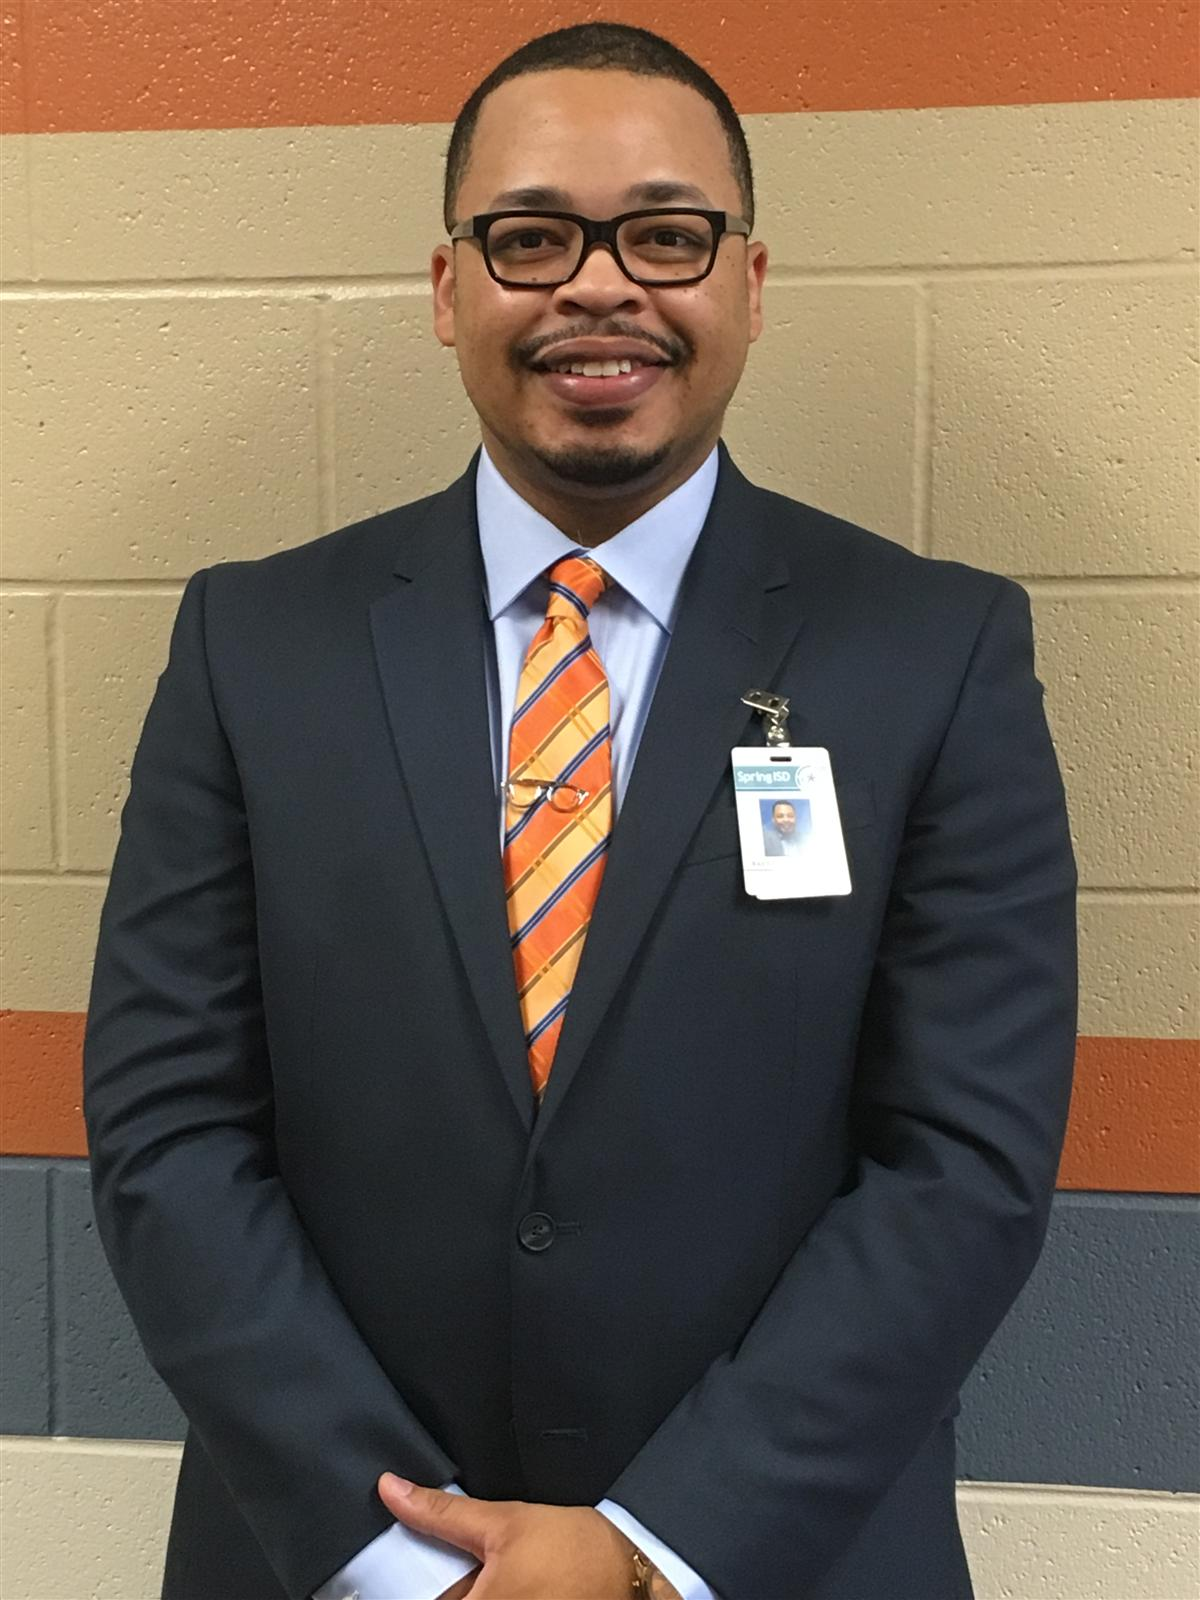 Dr. Hykeem Craft, 8th Grade Assistant Principal